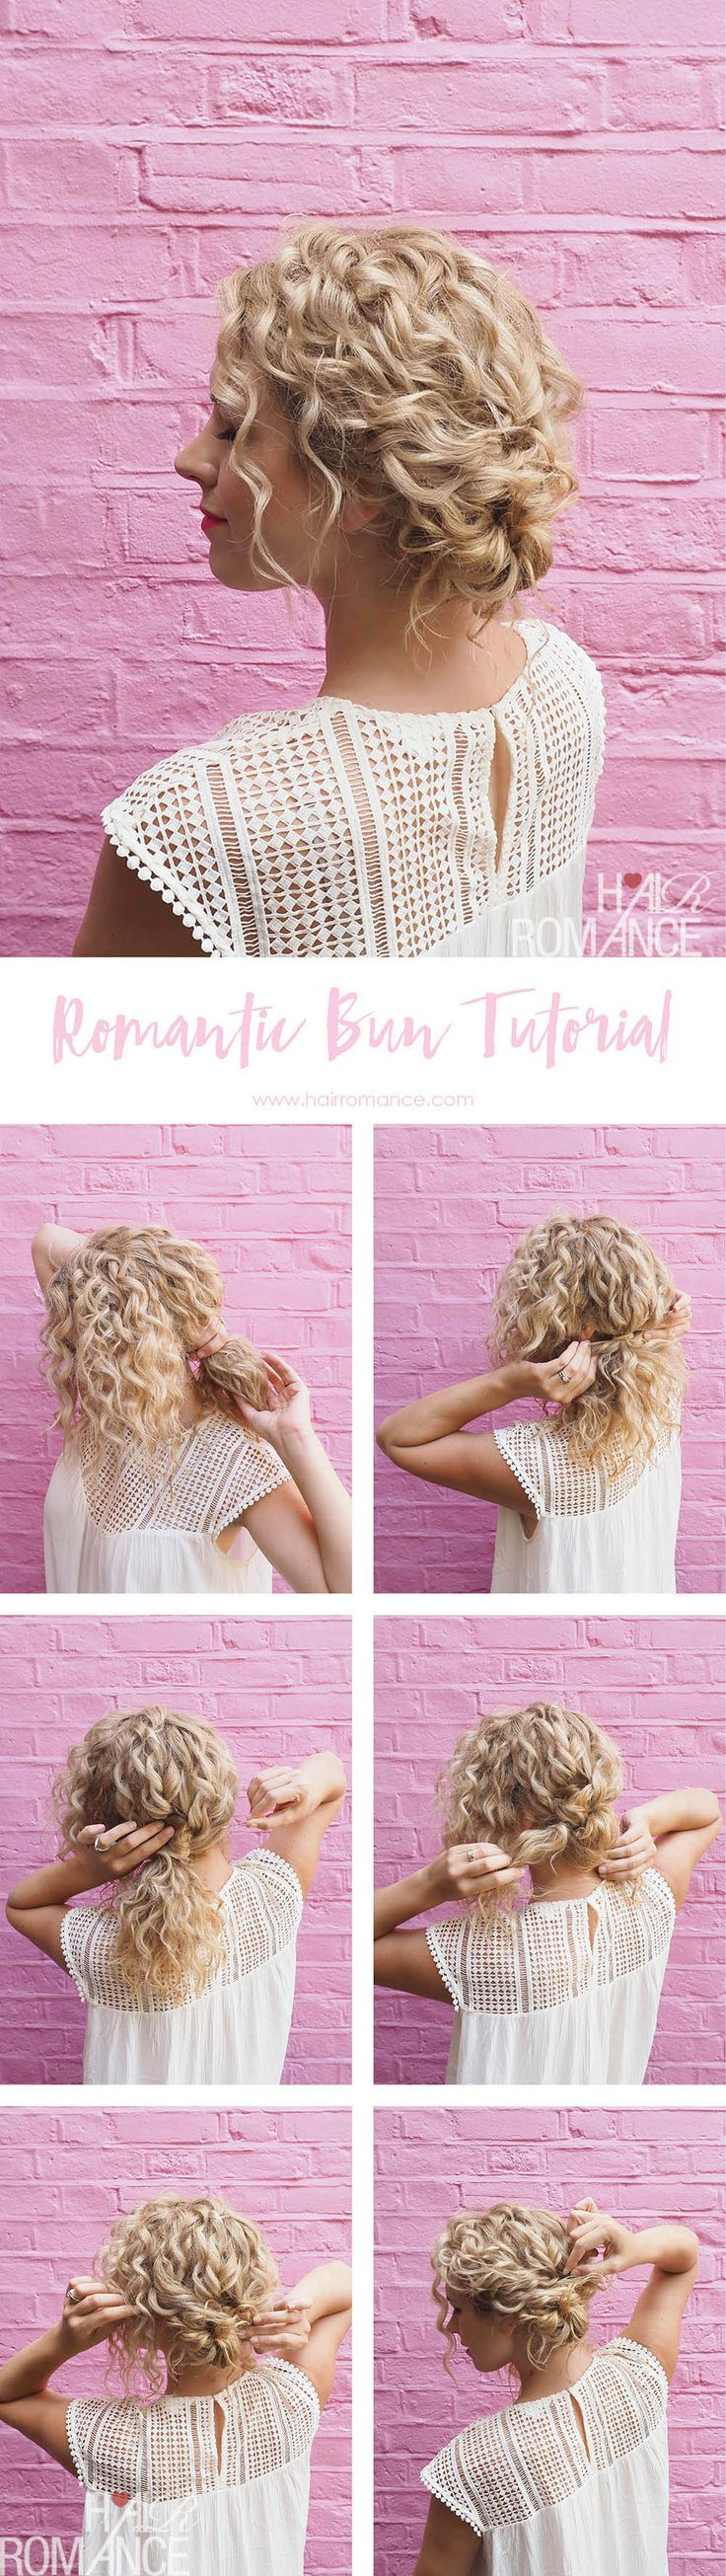 Love the contrast of the Blonde hair and white top with the bright soft pink background